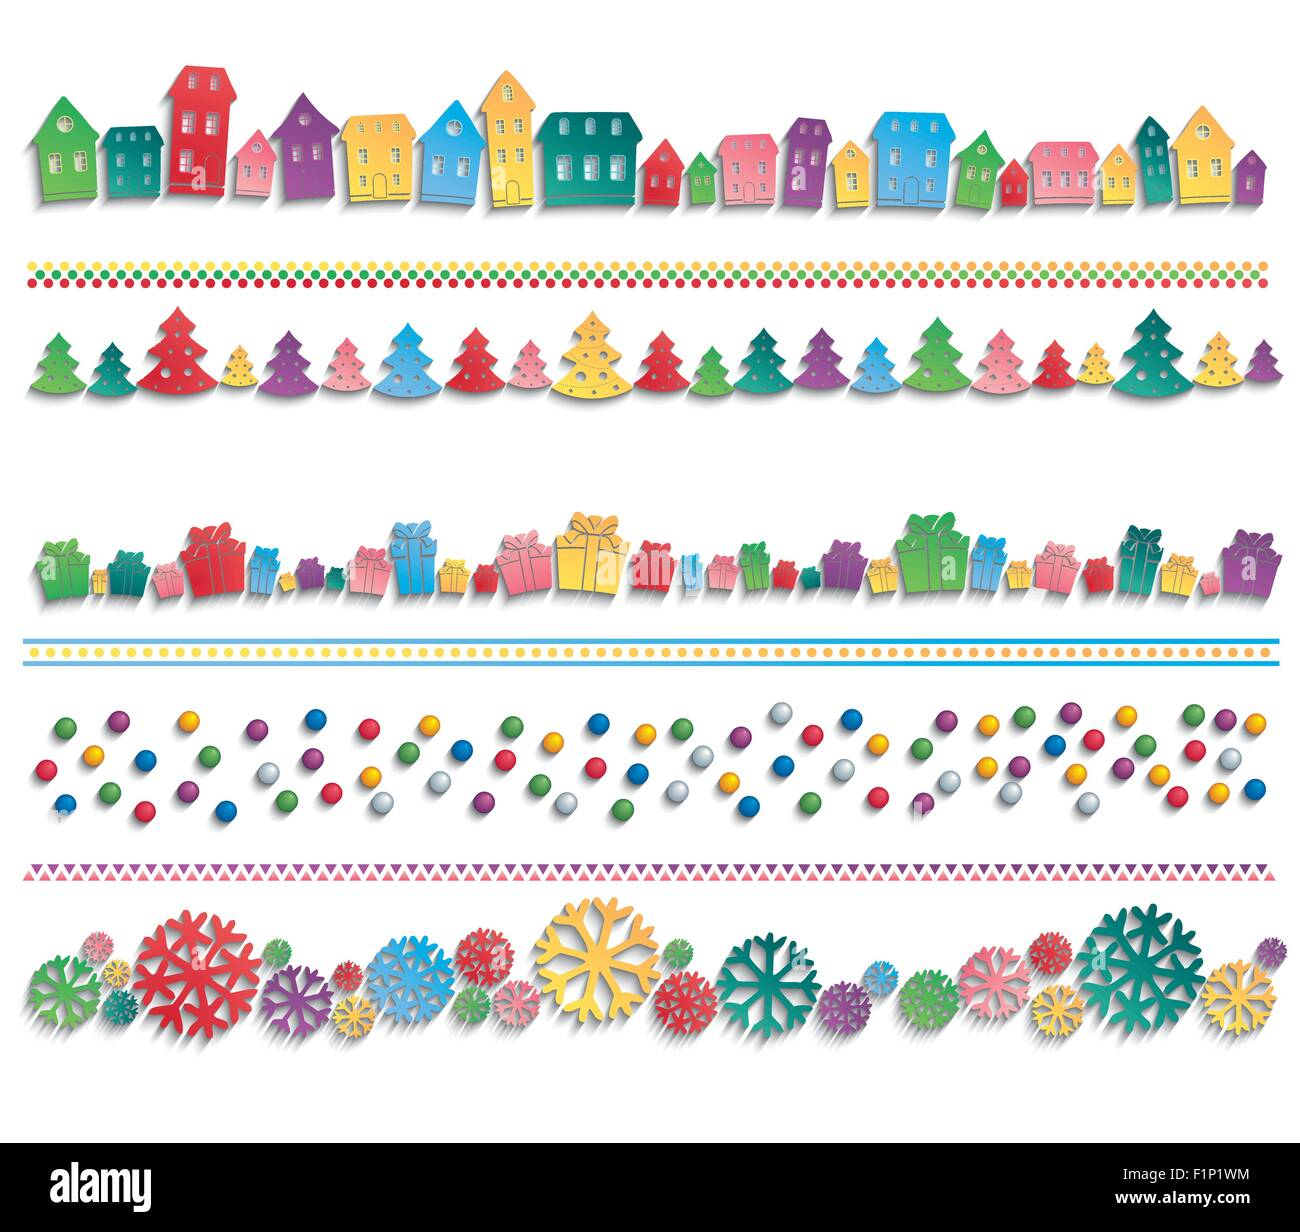 Colorful houses, trees, balls, gifts and snowflakes drawn up in line with the 3D shadow. Festive template for   - Stock Vector